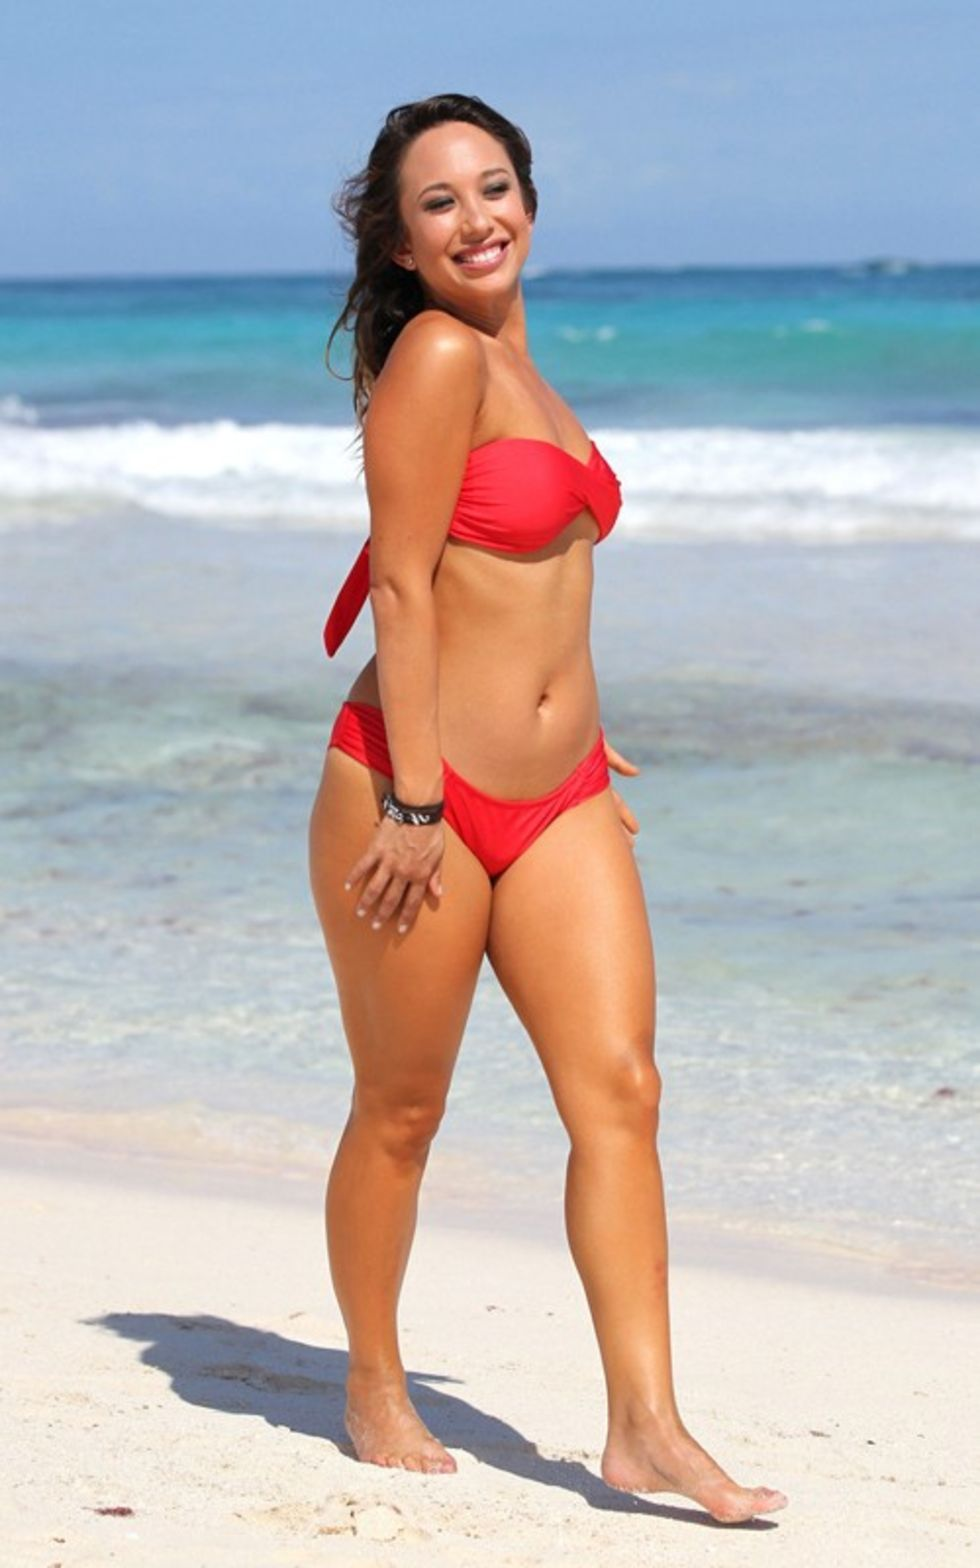 Celeb Bikini Bodies That Will Make You Feel Better About Yours…